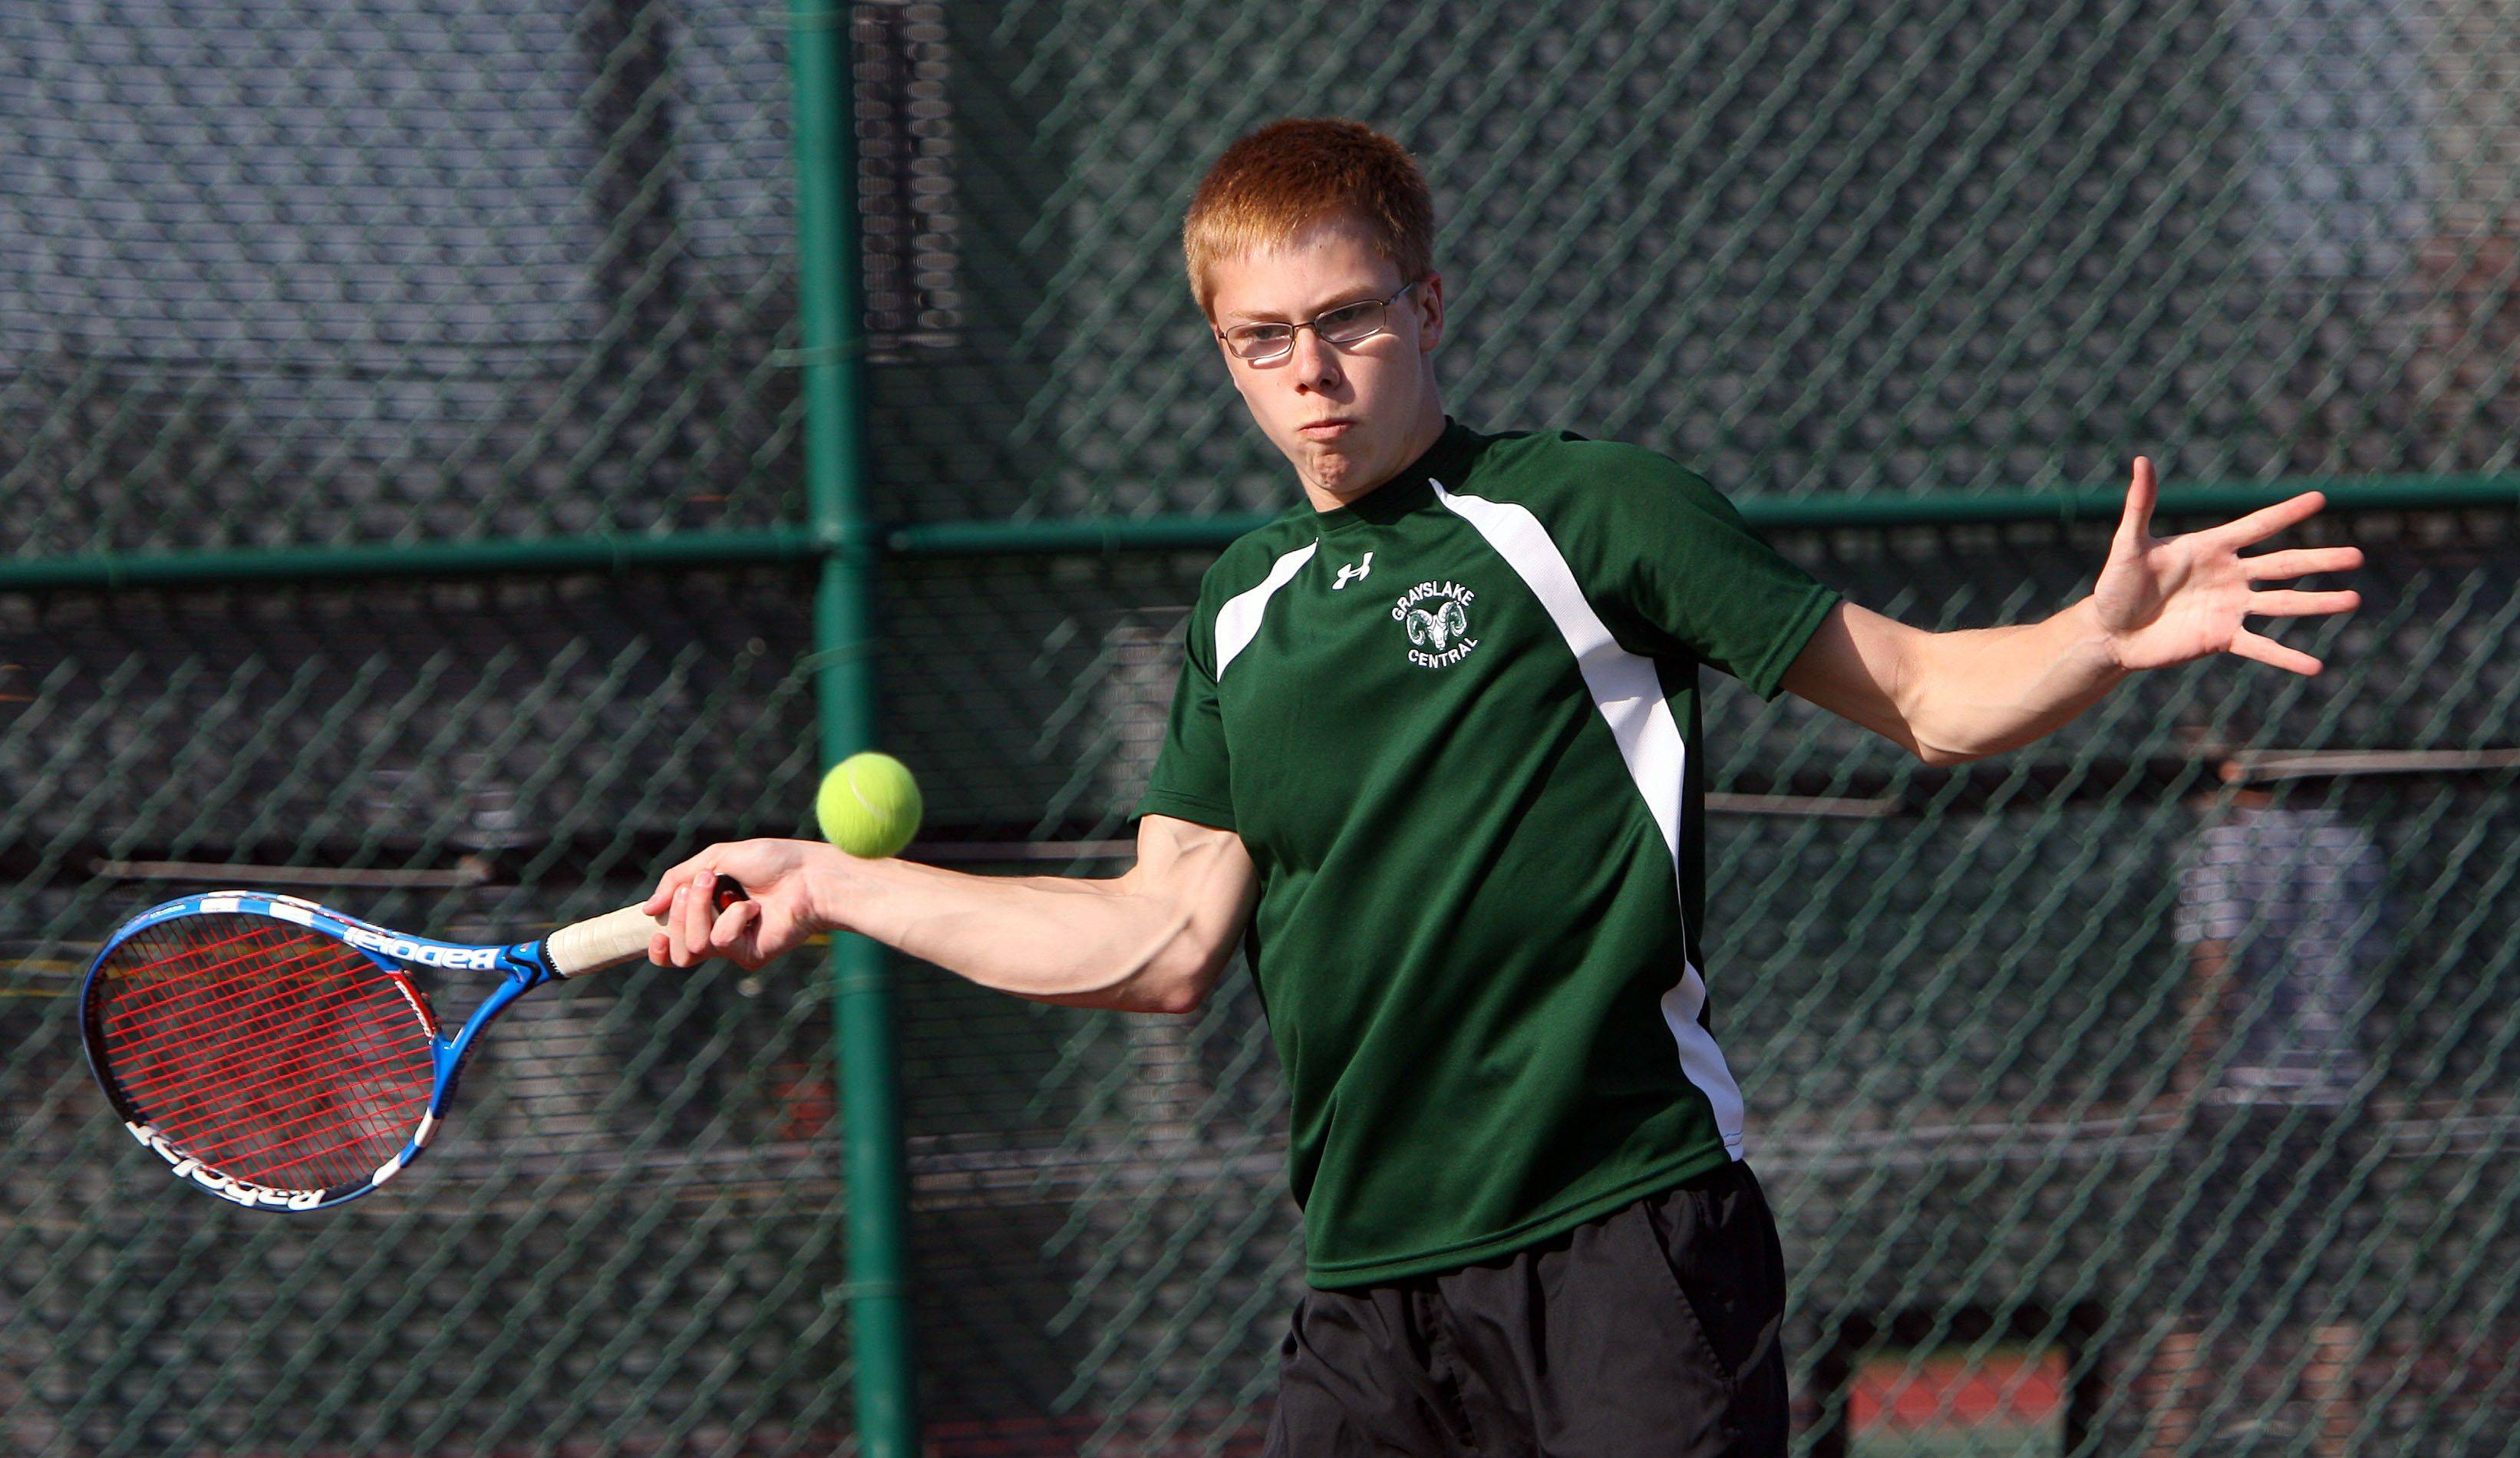 No. 2 singles player Steve Kveton hits a forehand during his match against Crystal Lake Central Tuesday at Grayslake Central High School.